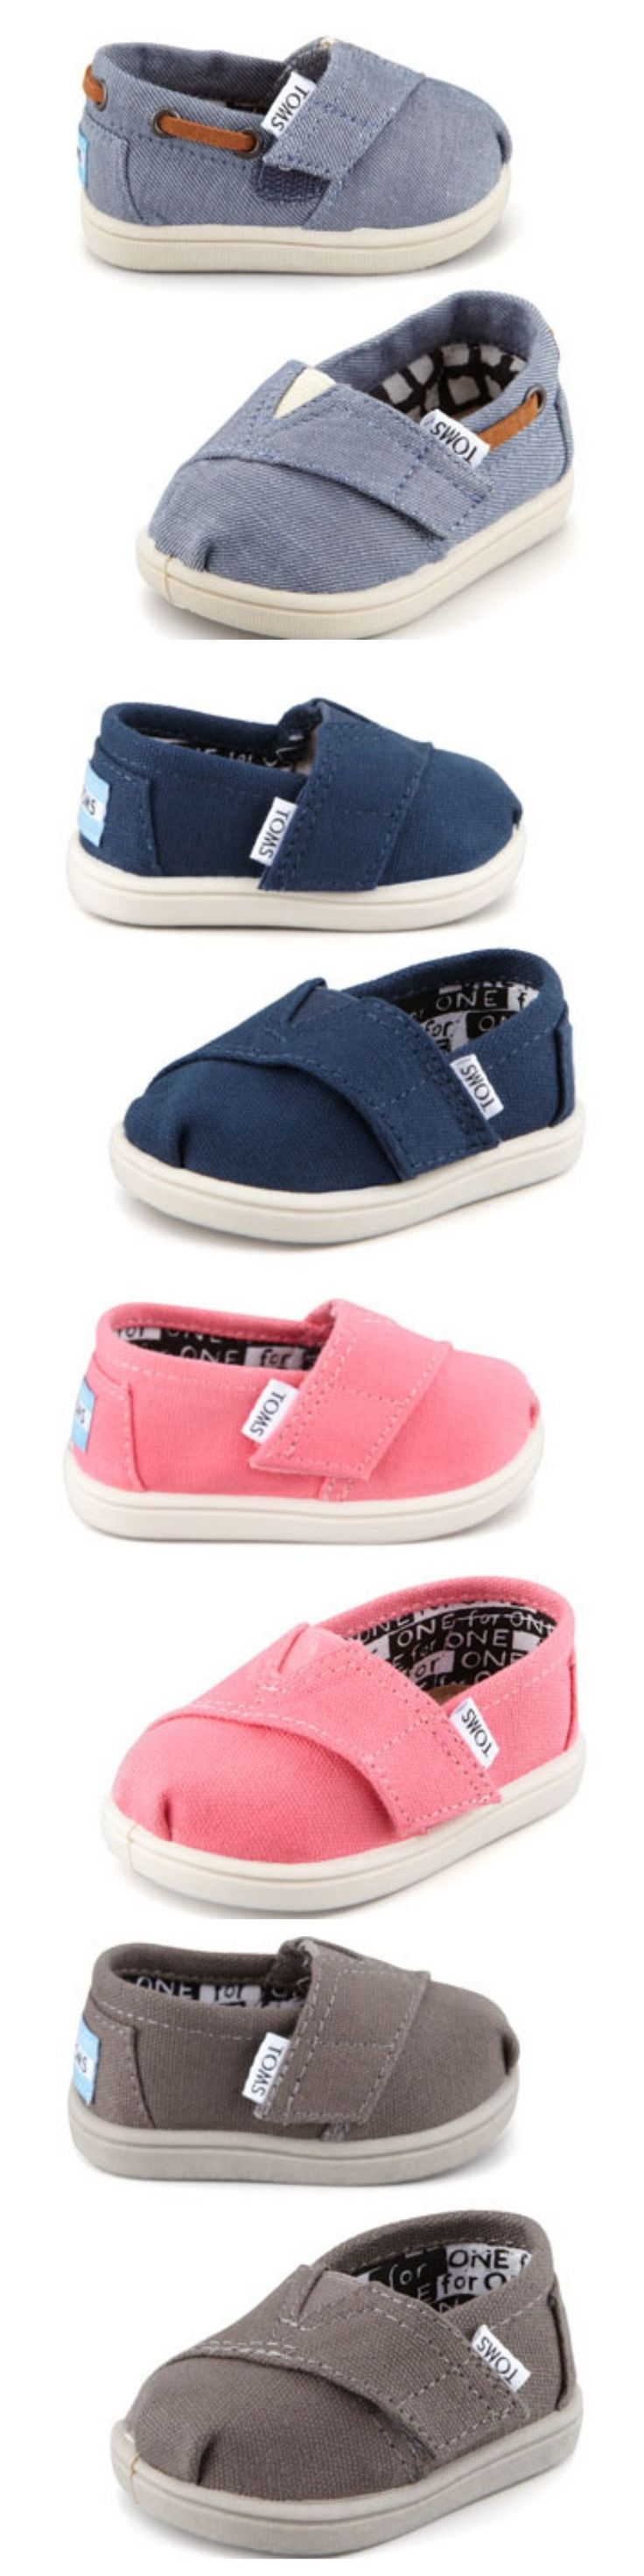 BABY TOMS!!! Need, want, must have!! I personally don't wear them but they are great to put them on a squiggly baby boy